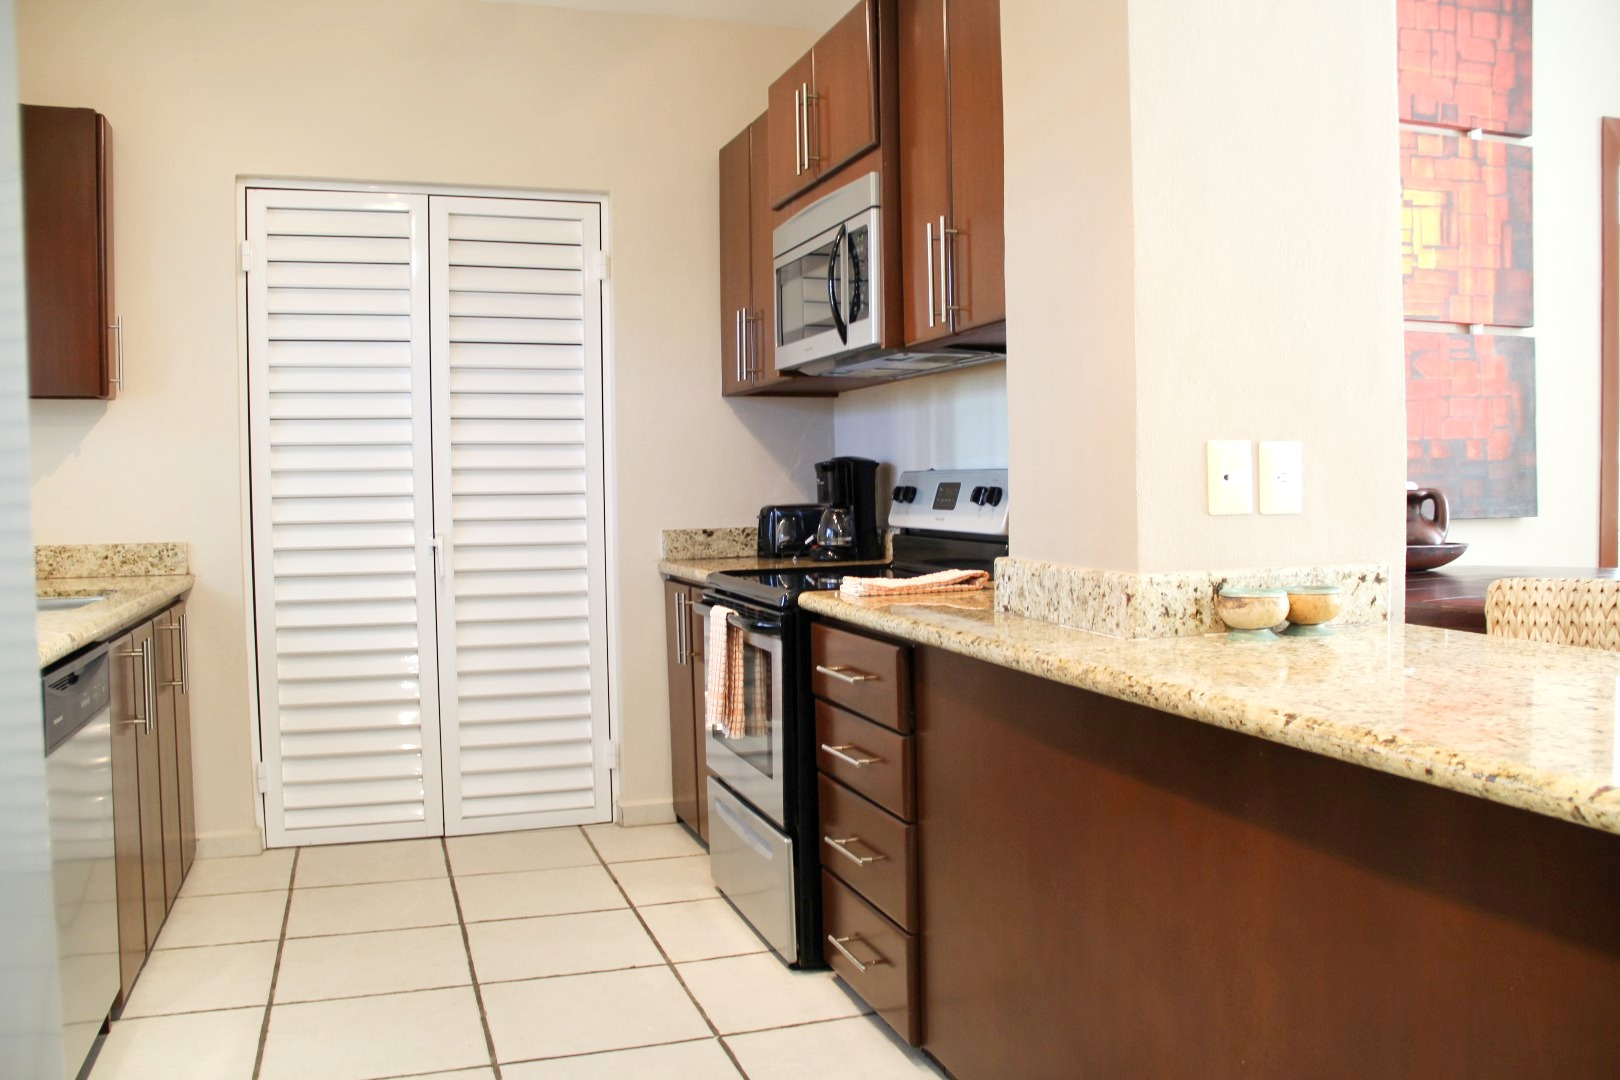 Galley style kitchen with cleaning closet at the end.